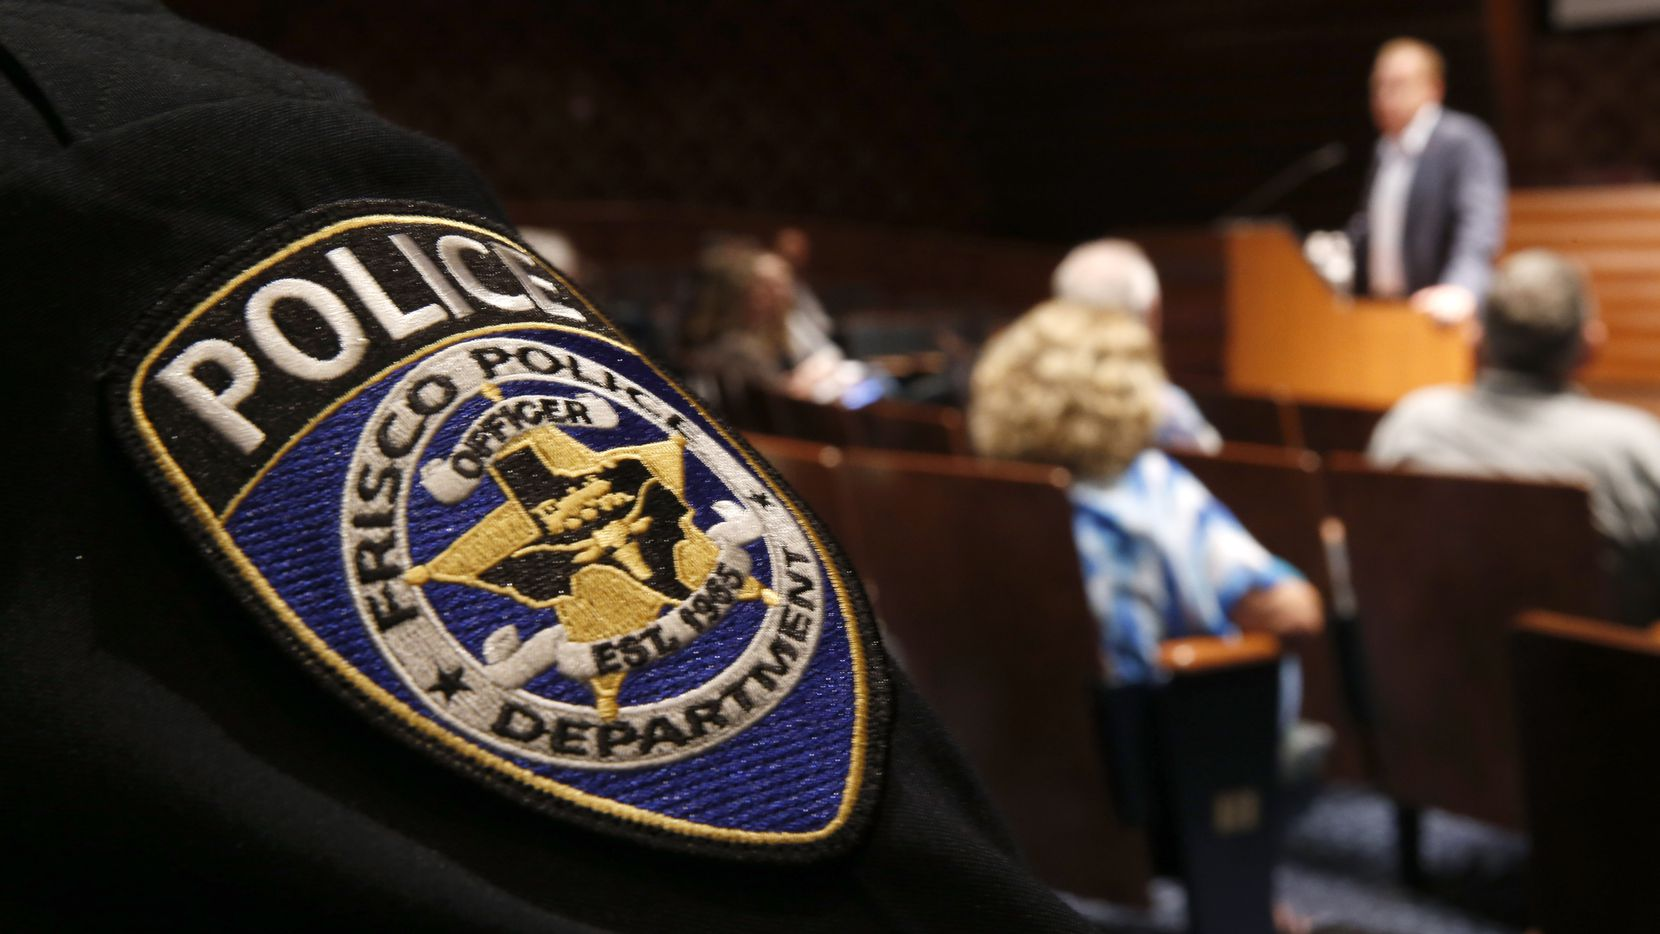 Frisco police chief John Bruce (not seen listens to Mayor Jeff Cheney talks about safety improvements in the school district at Frisco City Hall in Frisco, Texas on April 13, 2018.  (Nathan Hunsinger/The Dallas Morning News)